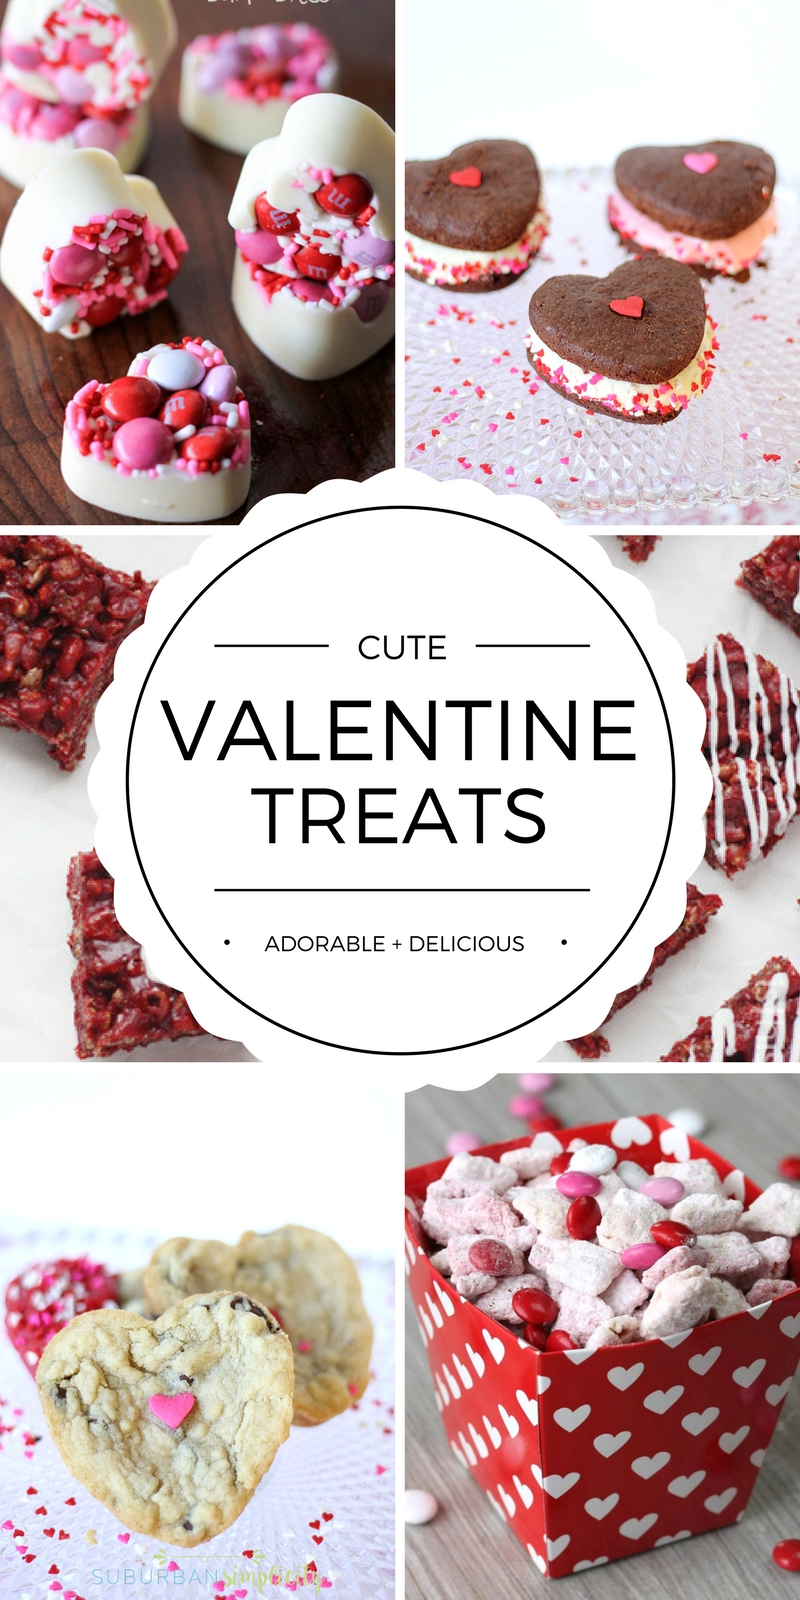 Share The Love With Cute Homemade Valentineu0027s Day Treat Ideas For Your  Family And Friends.